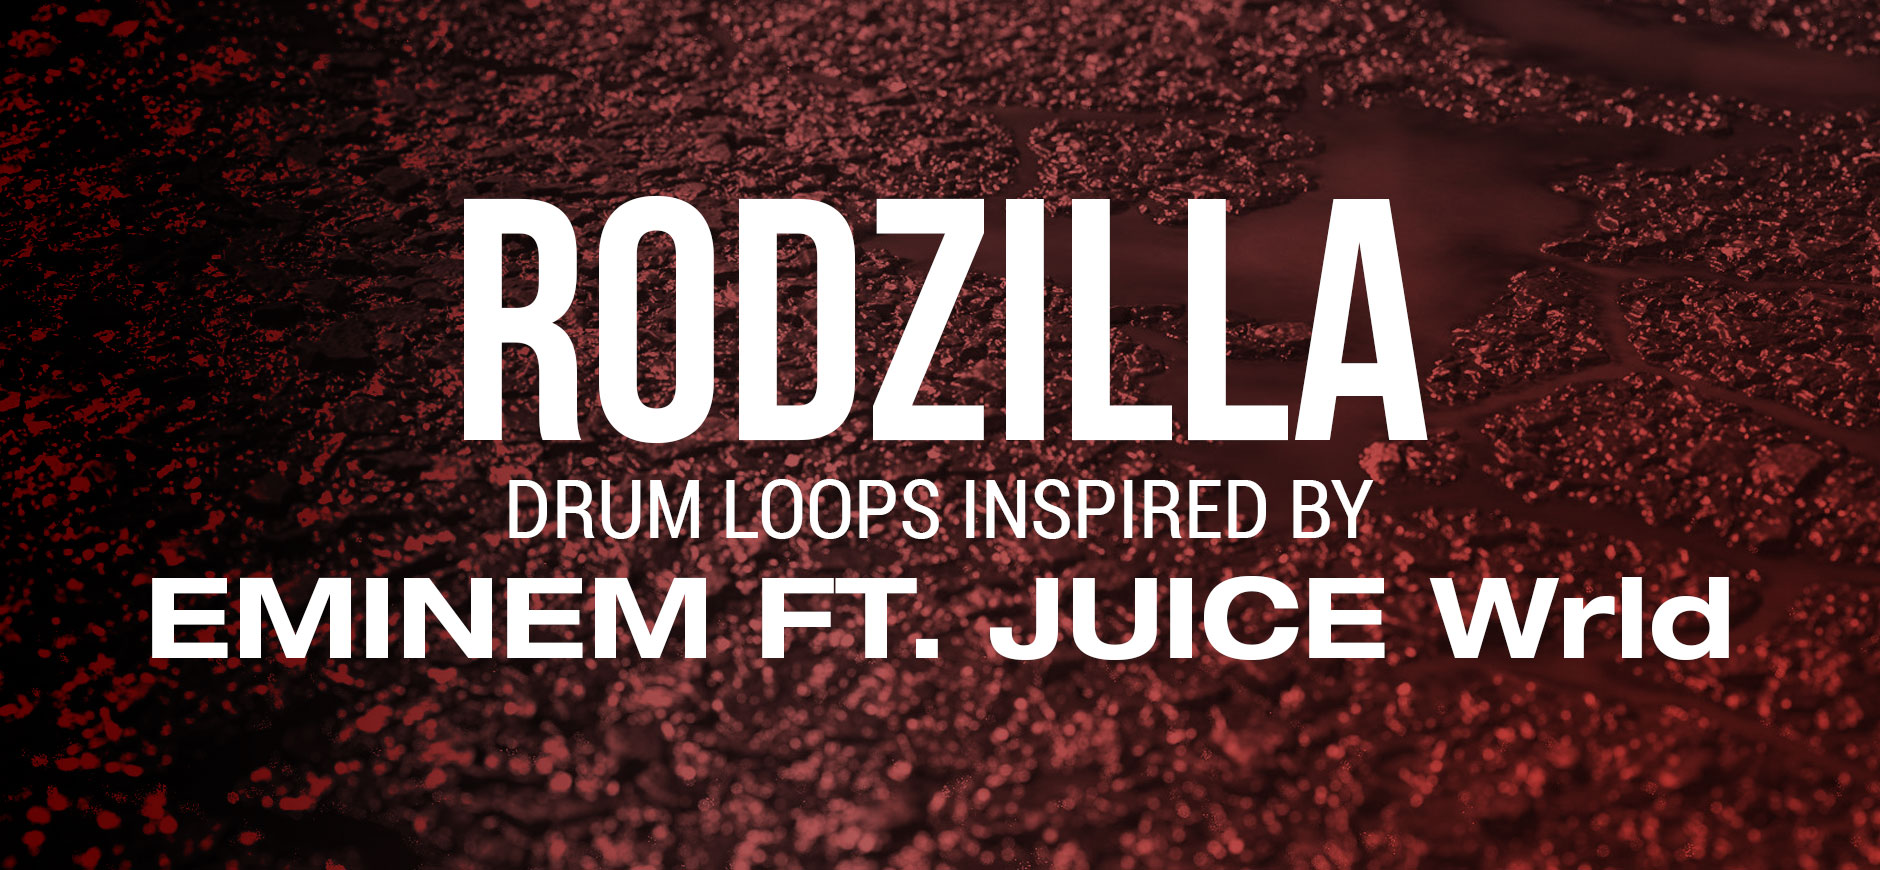 Godzilla Drum Loops Kit Inspired by Eminem ft. JUICE Wrld